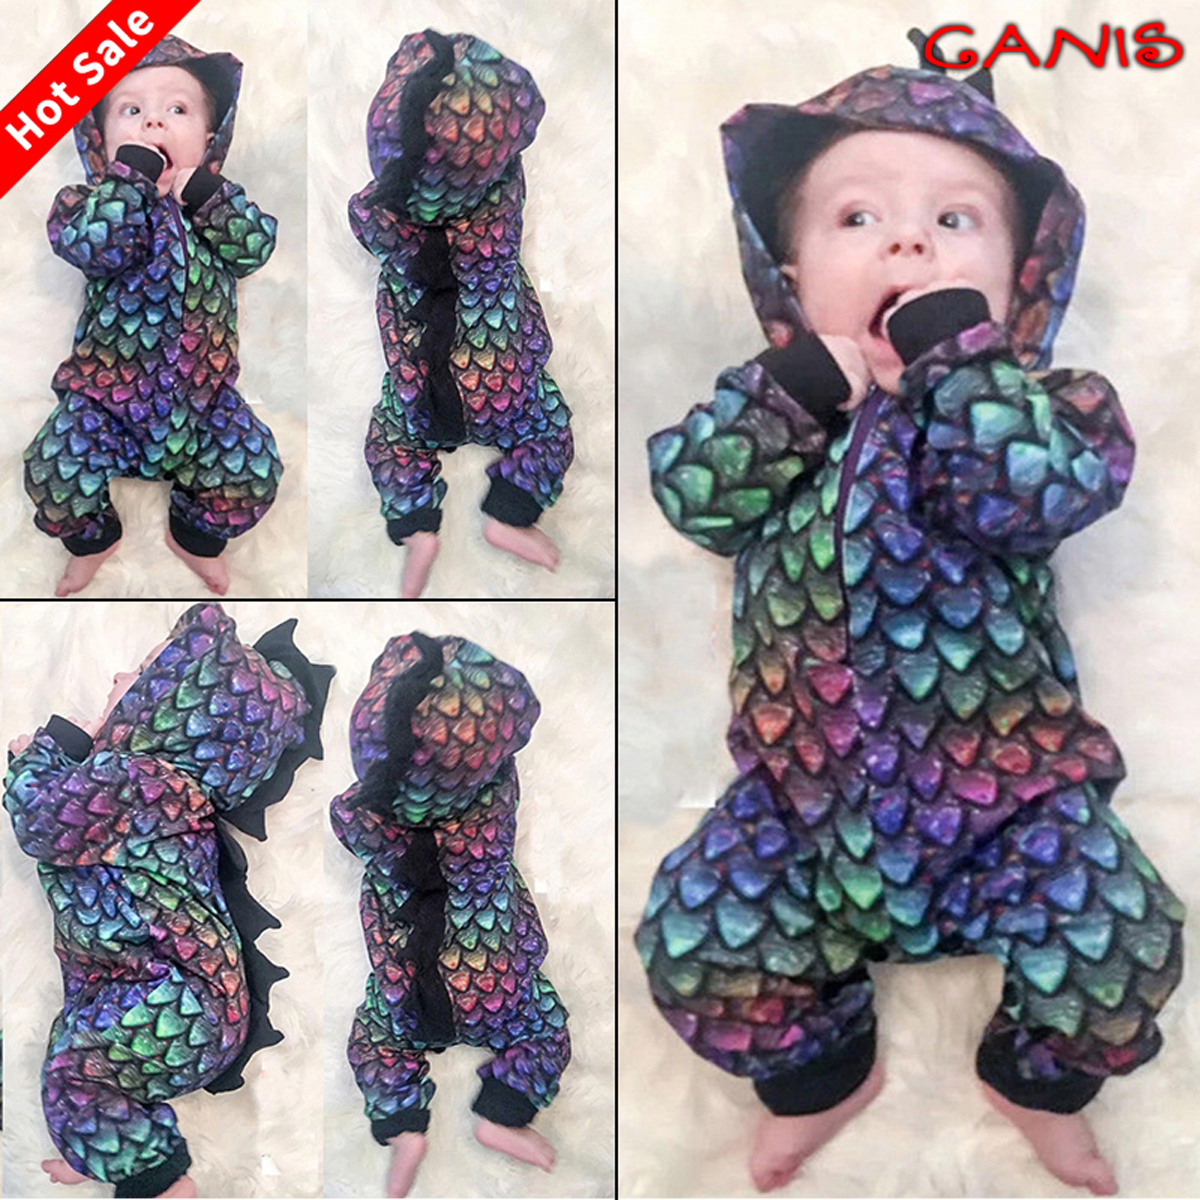 337b4cd40 Baby & Toddler Clothing US Kids Toddler Baby Girls Boys Dinosaur Romper  Jumpsuit Bodysuit Outfit Clothes